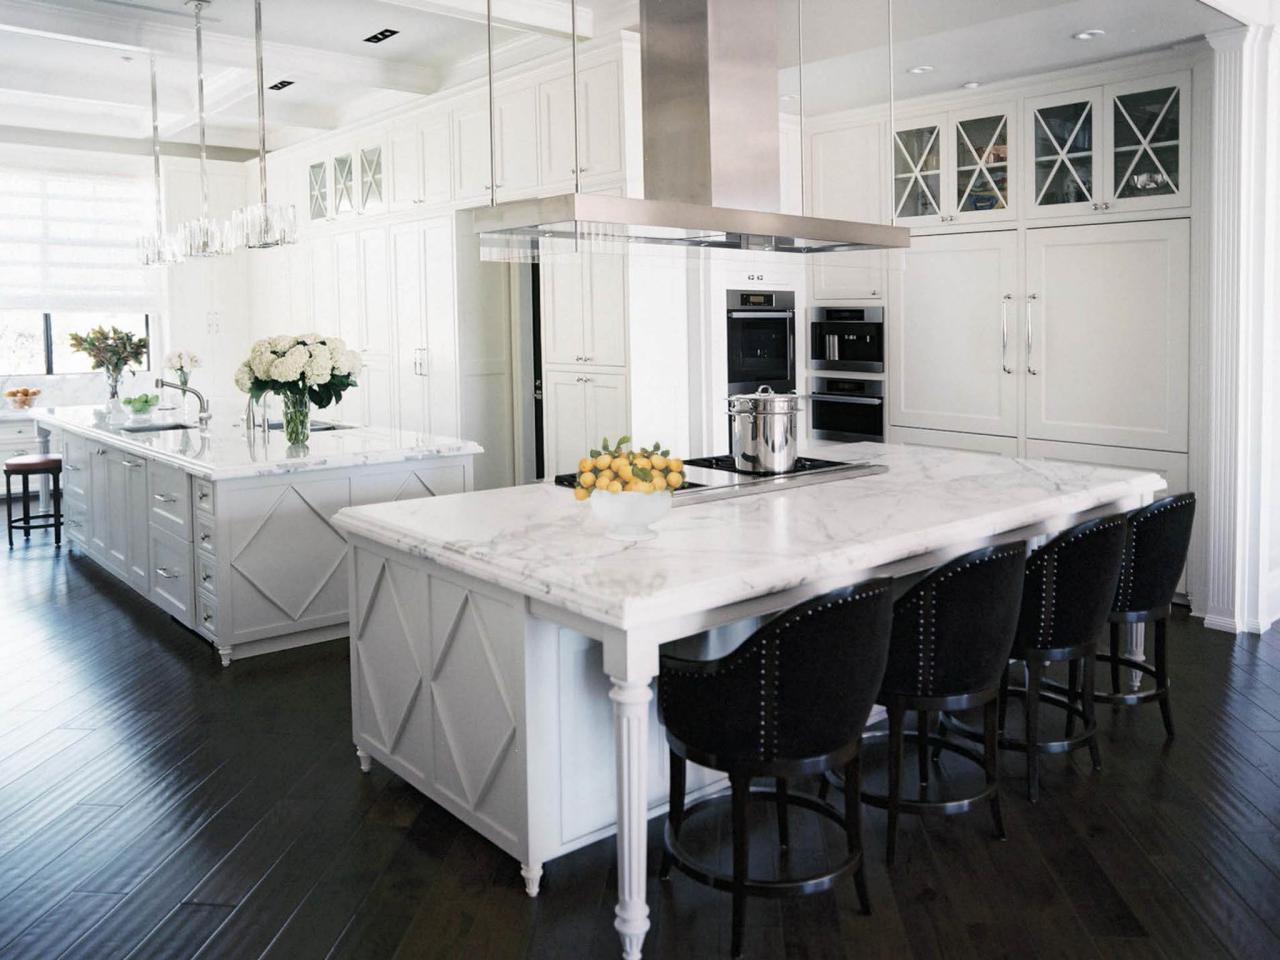 White Kitchen Black Floor black kitchen cabinets: pictures, ideas & tips from hgtv | hgtv